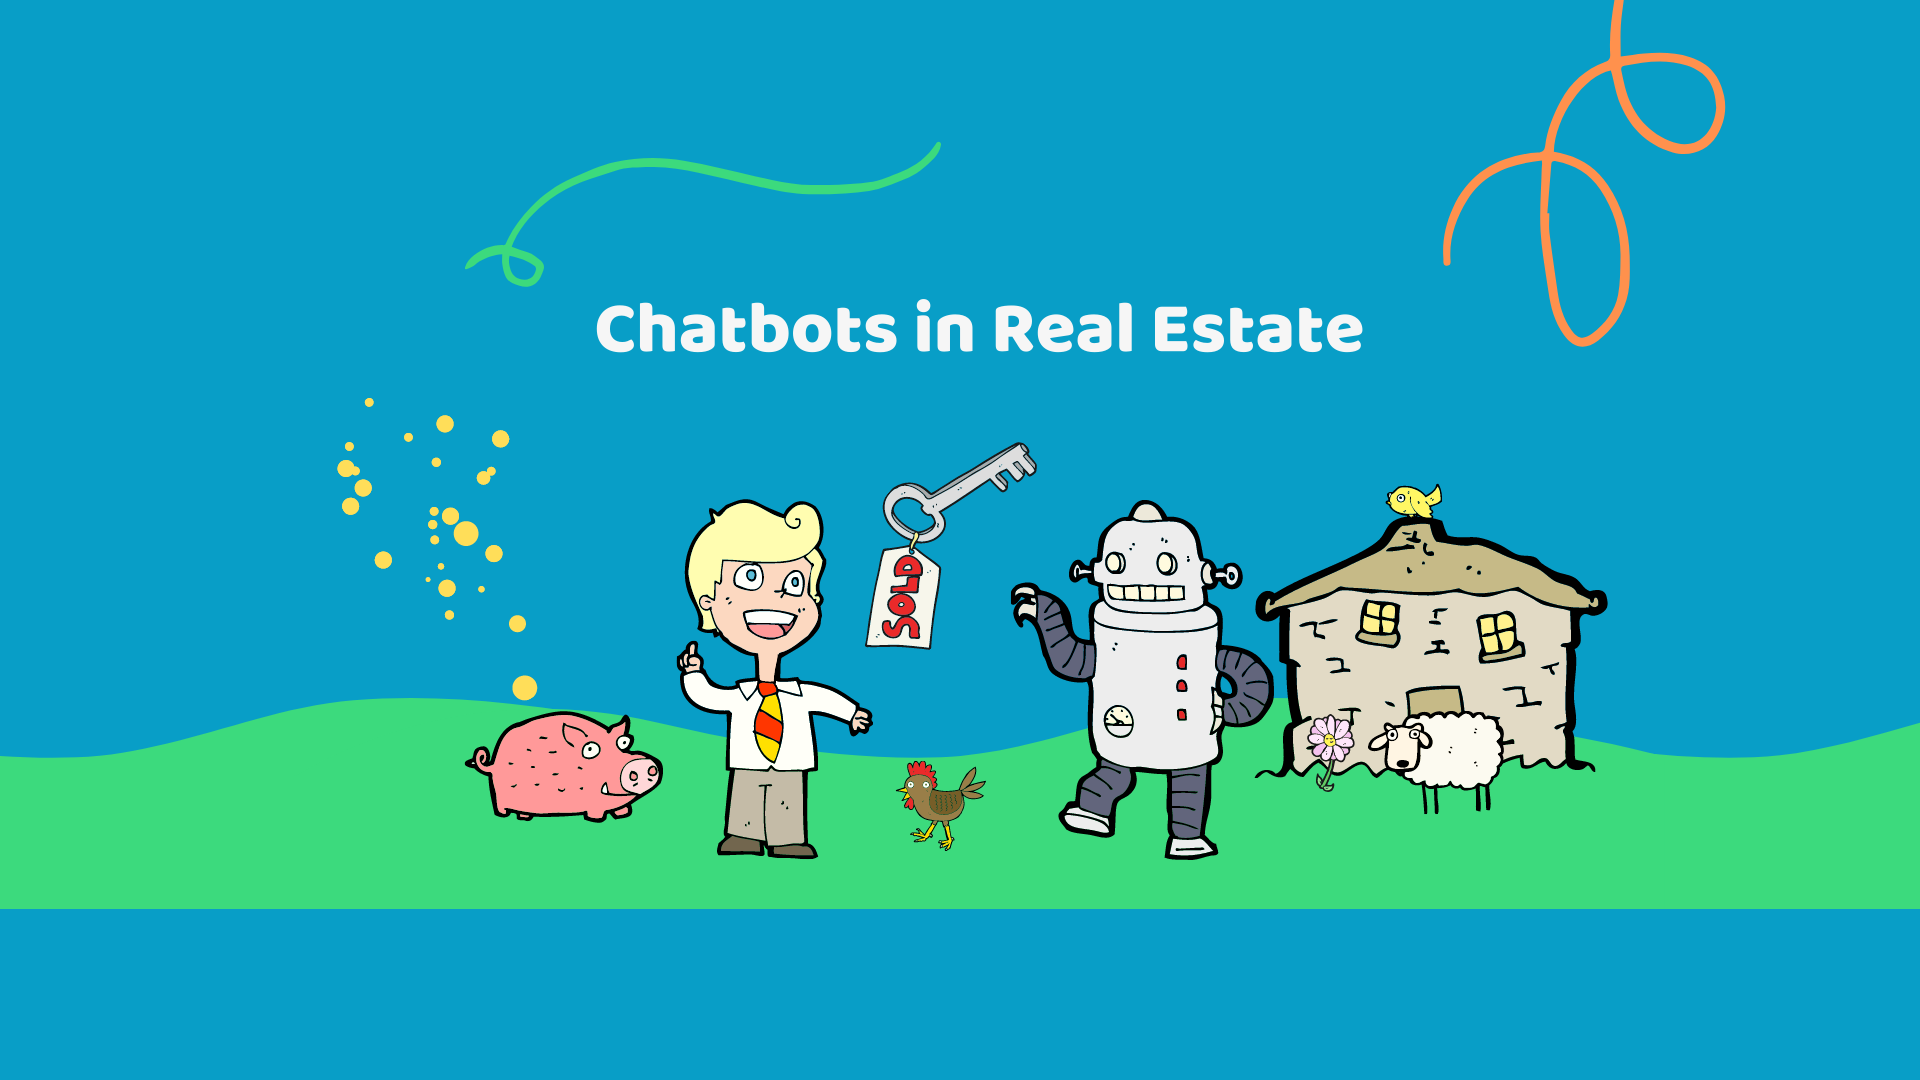 Top 10 reasons why you should use real estate chatbots